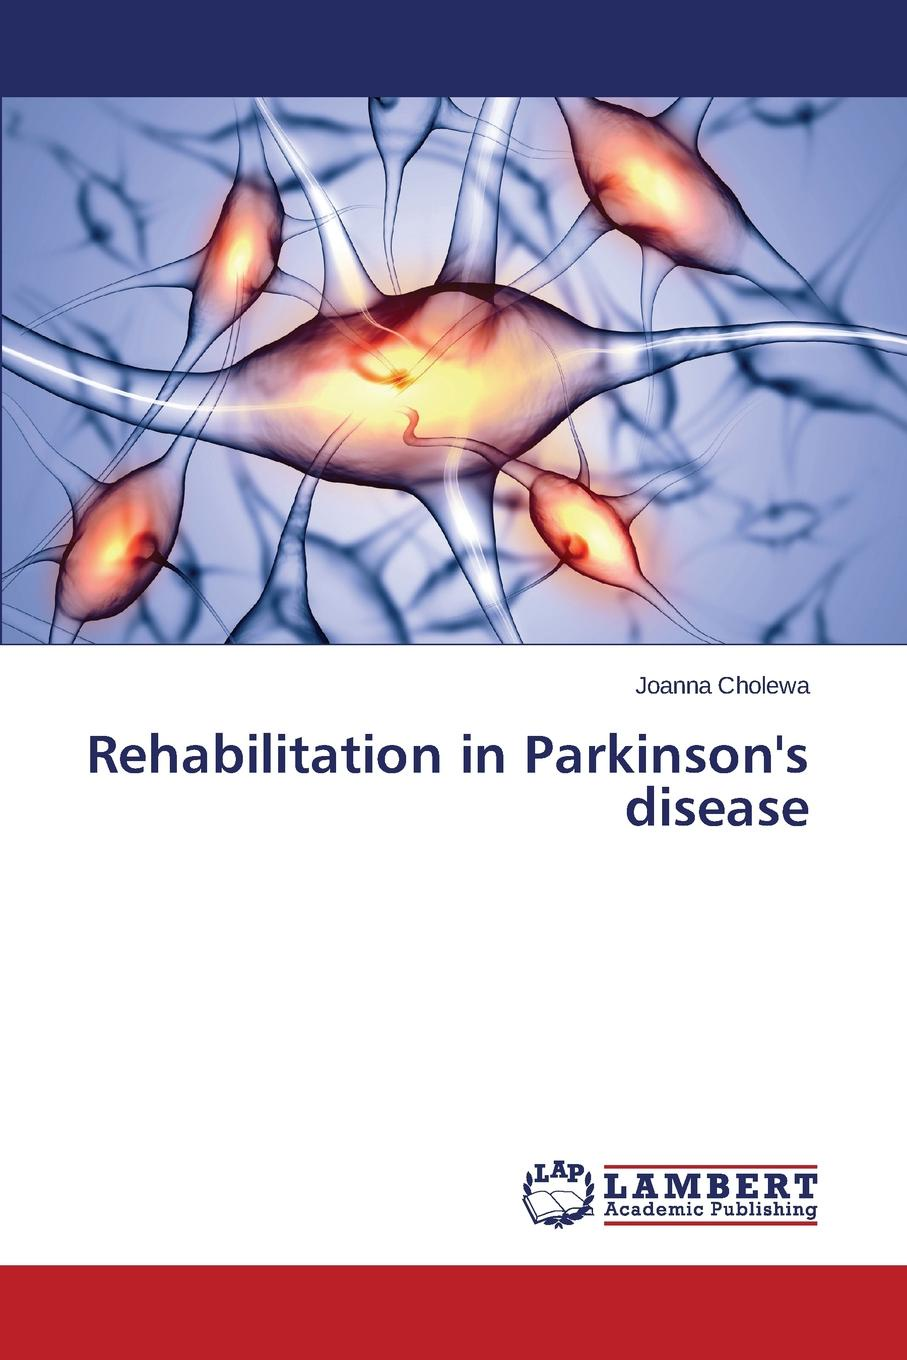 Cholewa Joanna Rehabilitation in Parkinson.s disease patricia lightner parkinson s disease and me walking the path